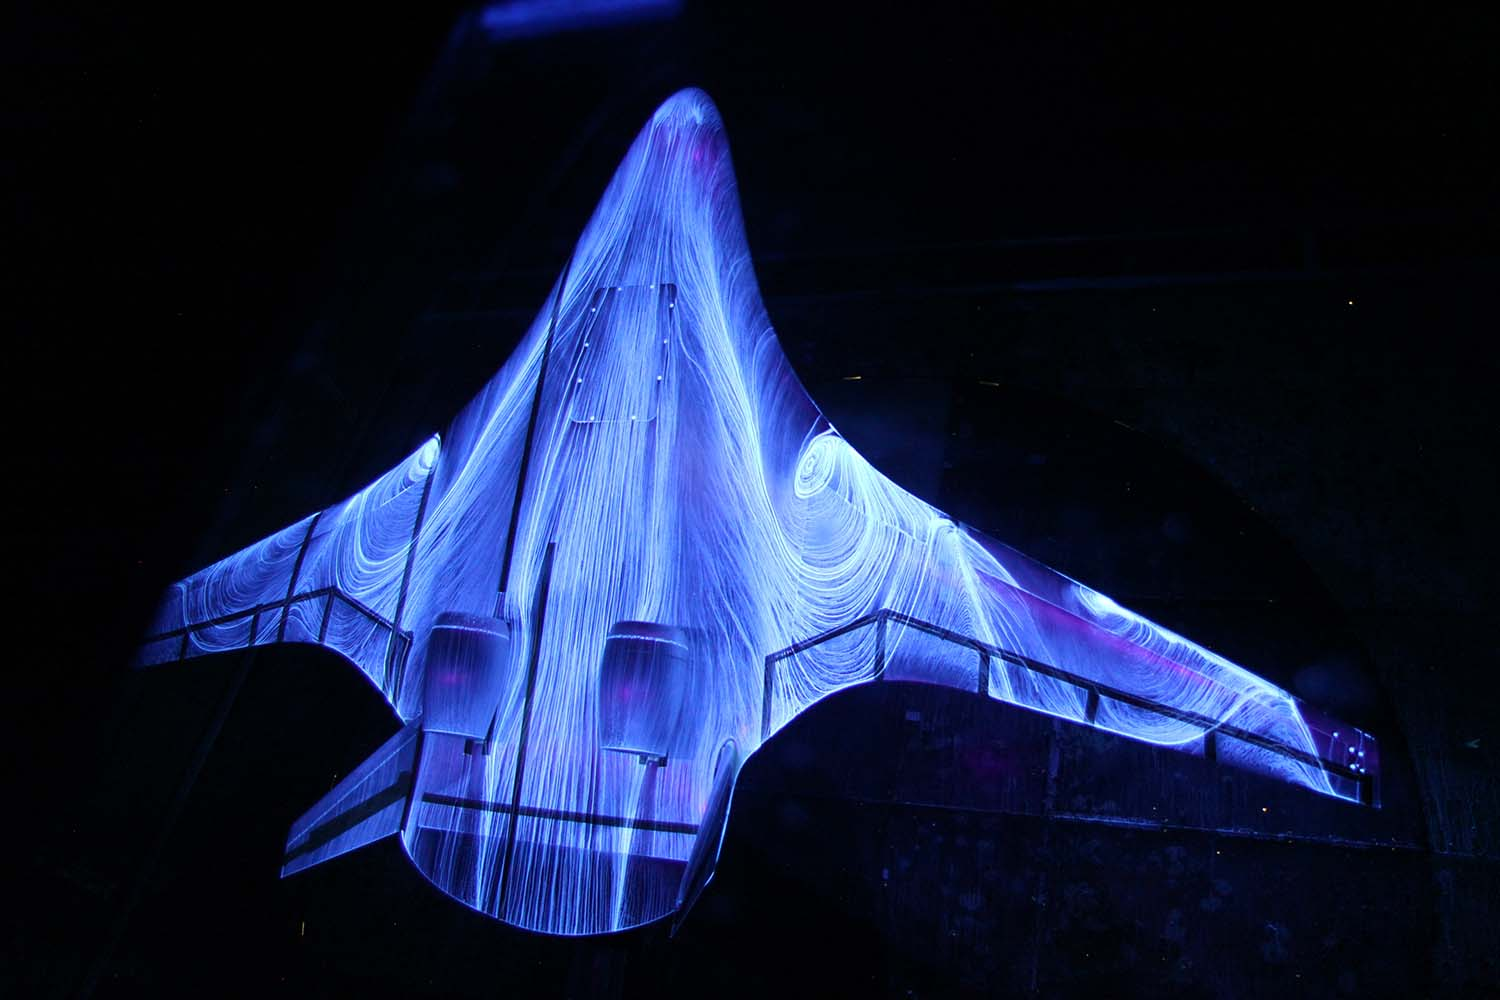 Undated. This photo provided by NASA on Sept. 27, 2013 shows fluorescent oil on a 5.8 percent scale model of a hybrid wing body aircraft during tests in the 14 by 22 Foot Subsonic Wind Tunnel at the NASA Langley facility in Hampton, Va.